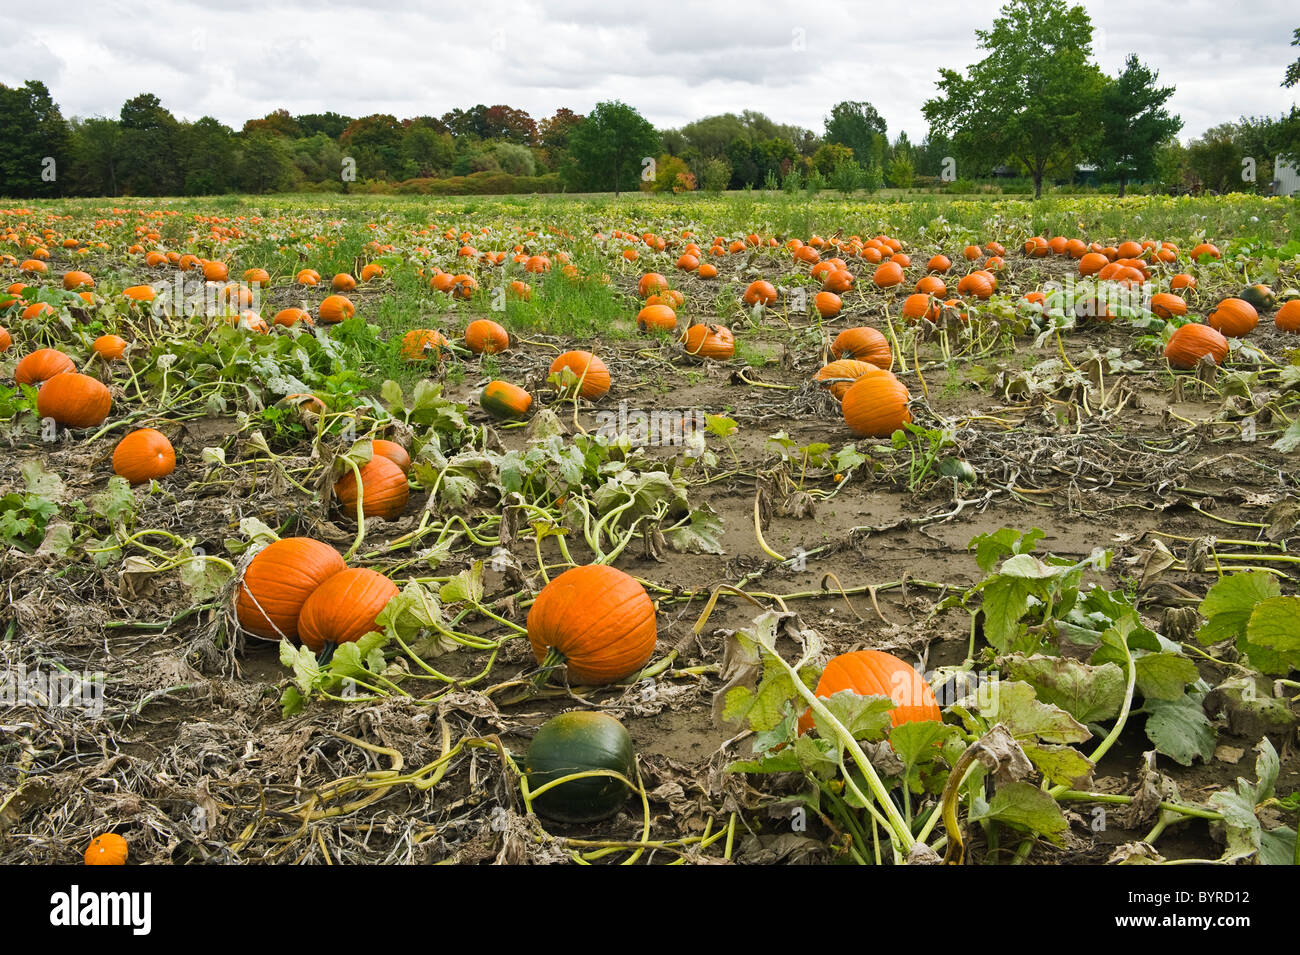 Agriculture - Field of mature pumpkins ready for harvest / near Collingwood, Ontario, Canada. - Stock Image